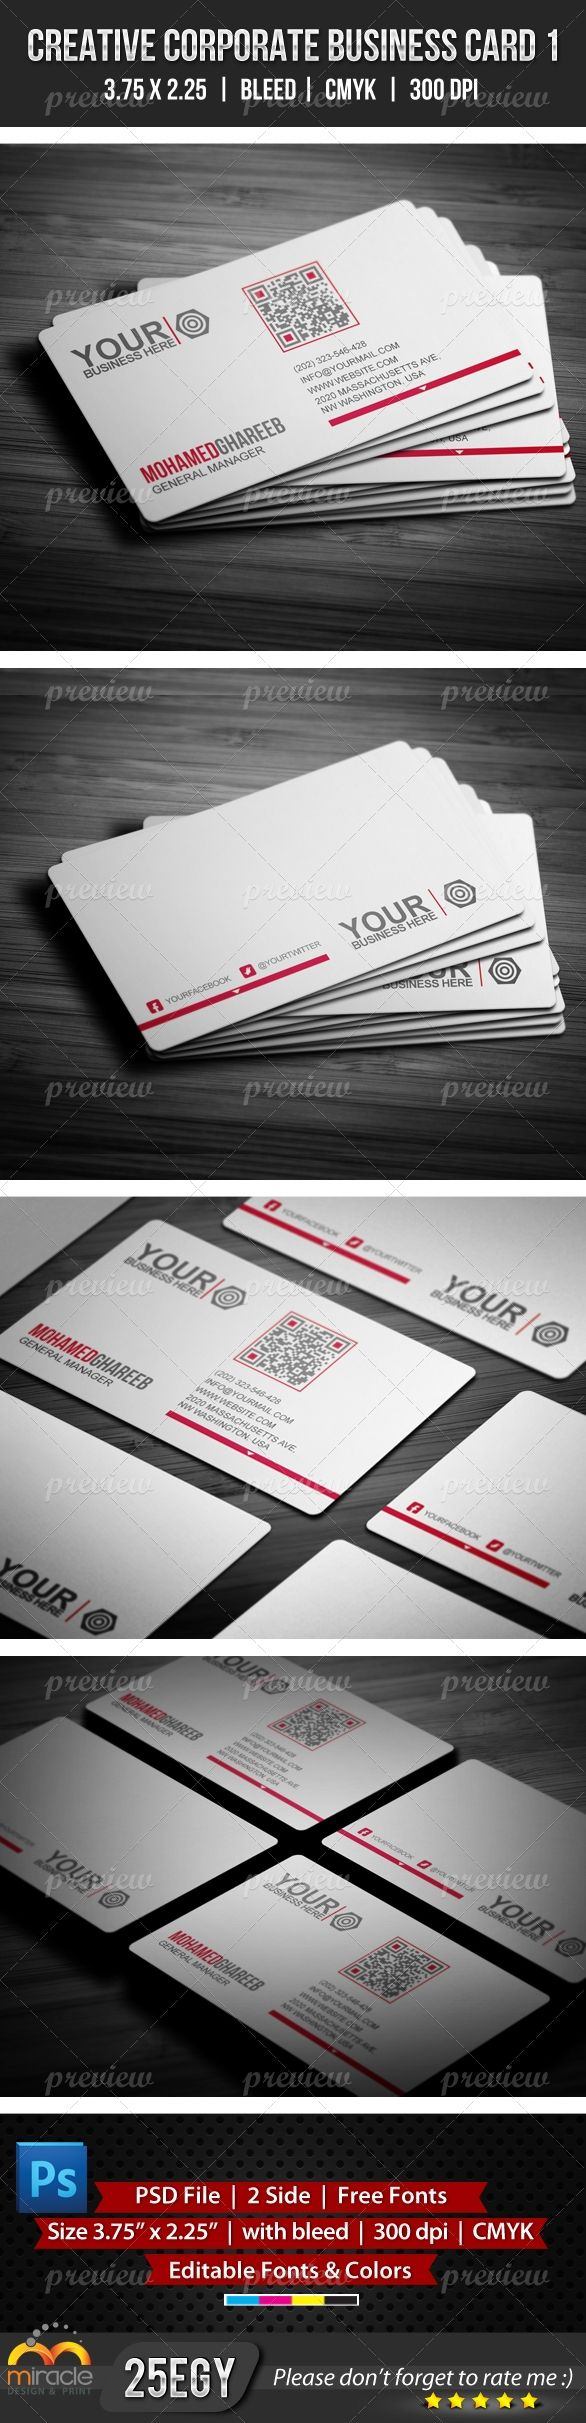 Creative Corporate Business Card 1 Corporate Business Corporate